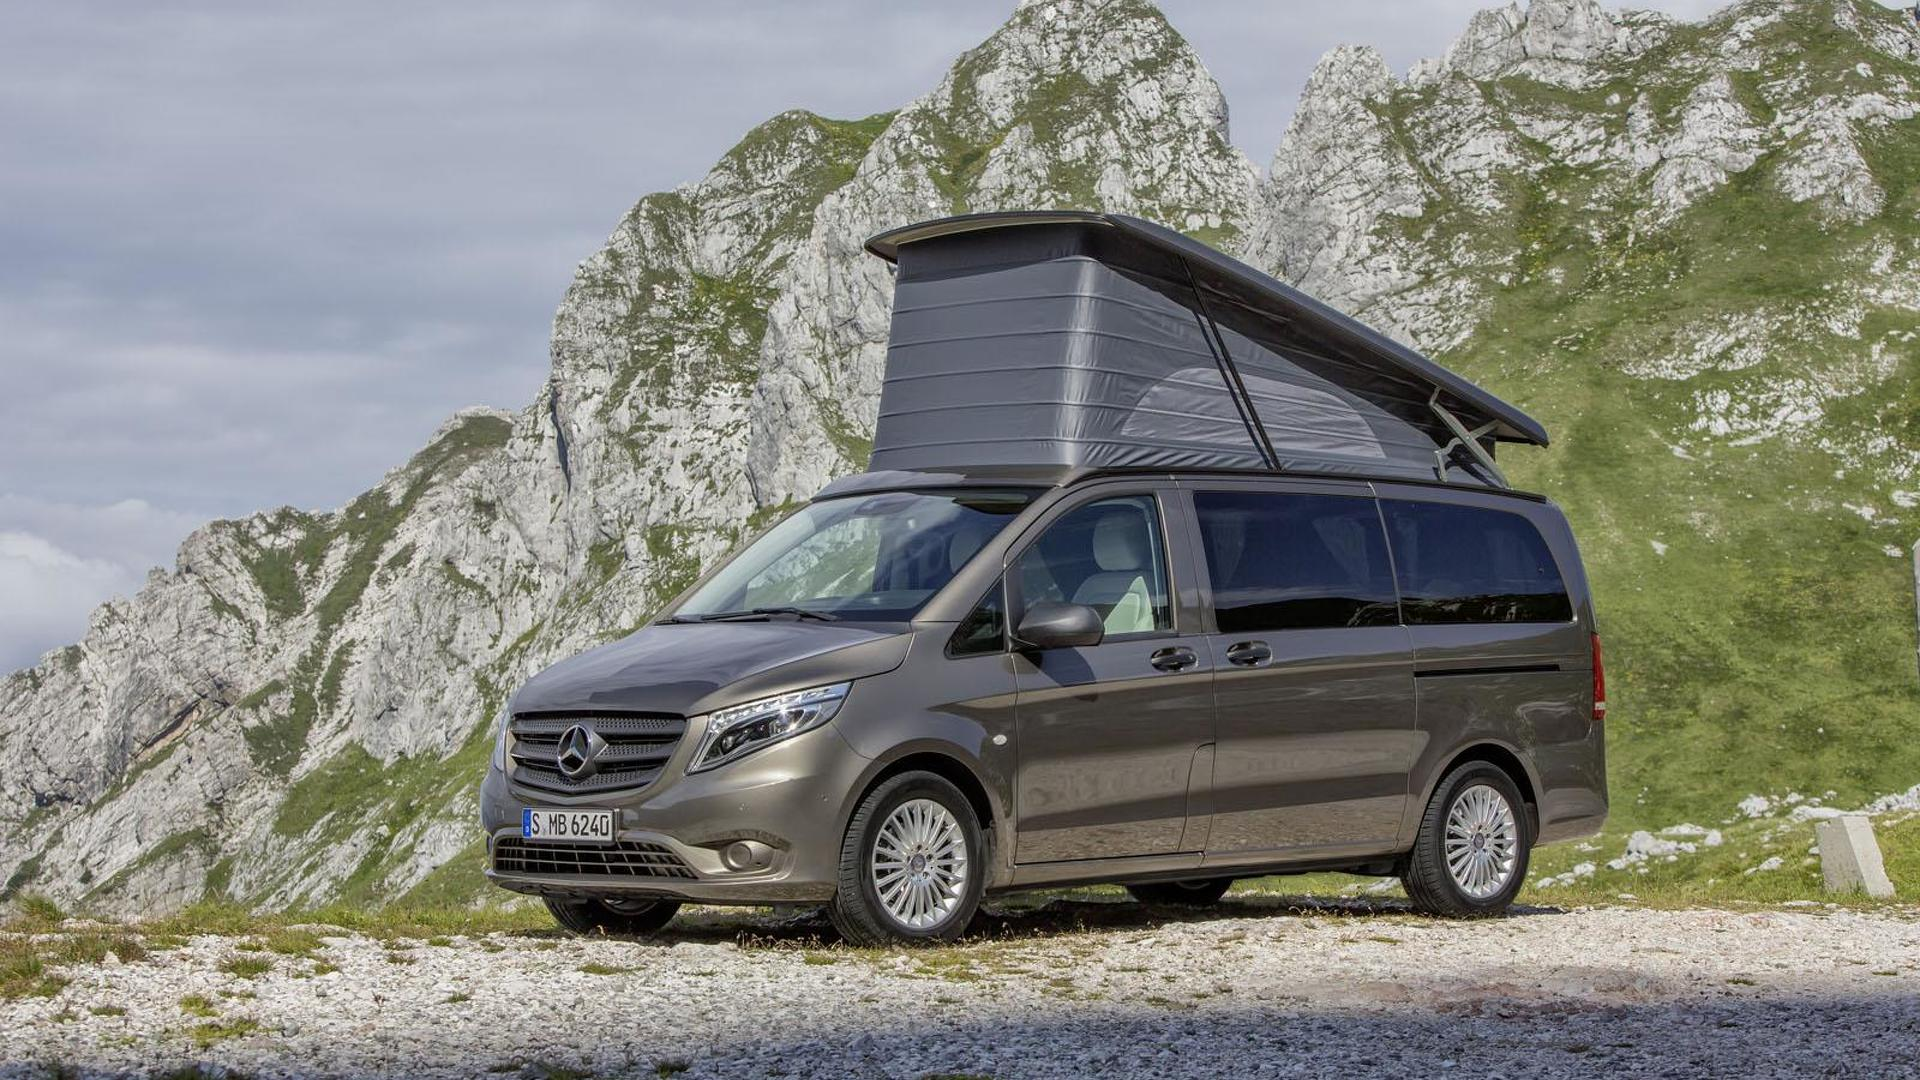 Assez 2015 Mercedes Marco Polo Activity unveiled, based on the Vito YO07